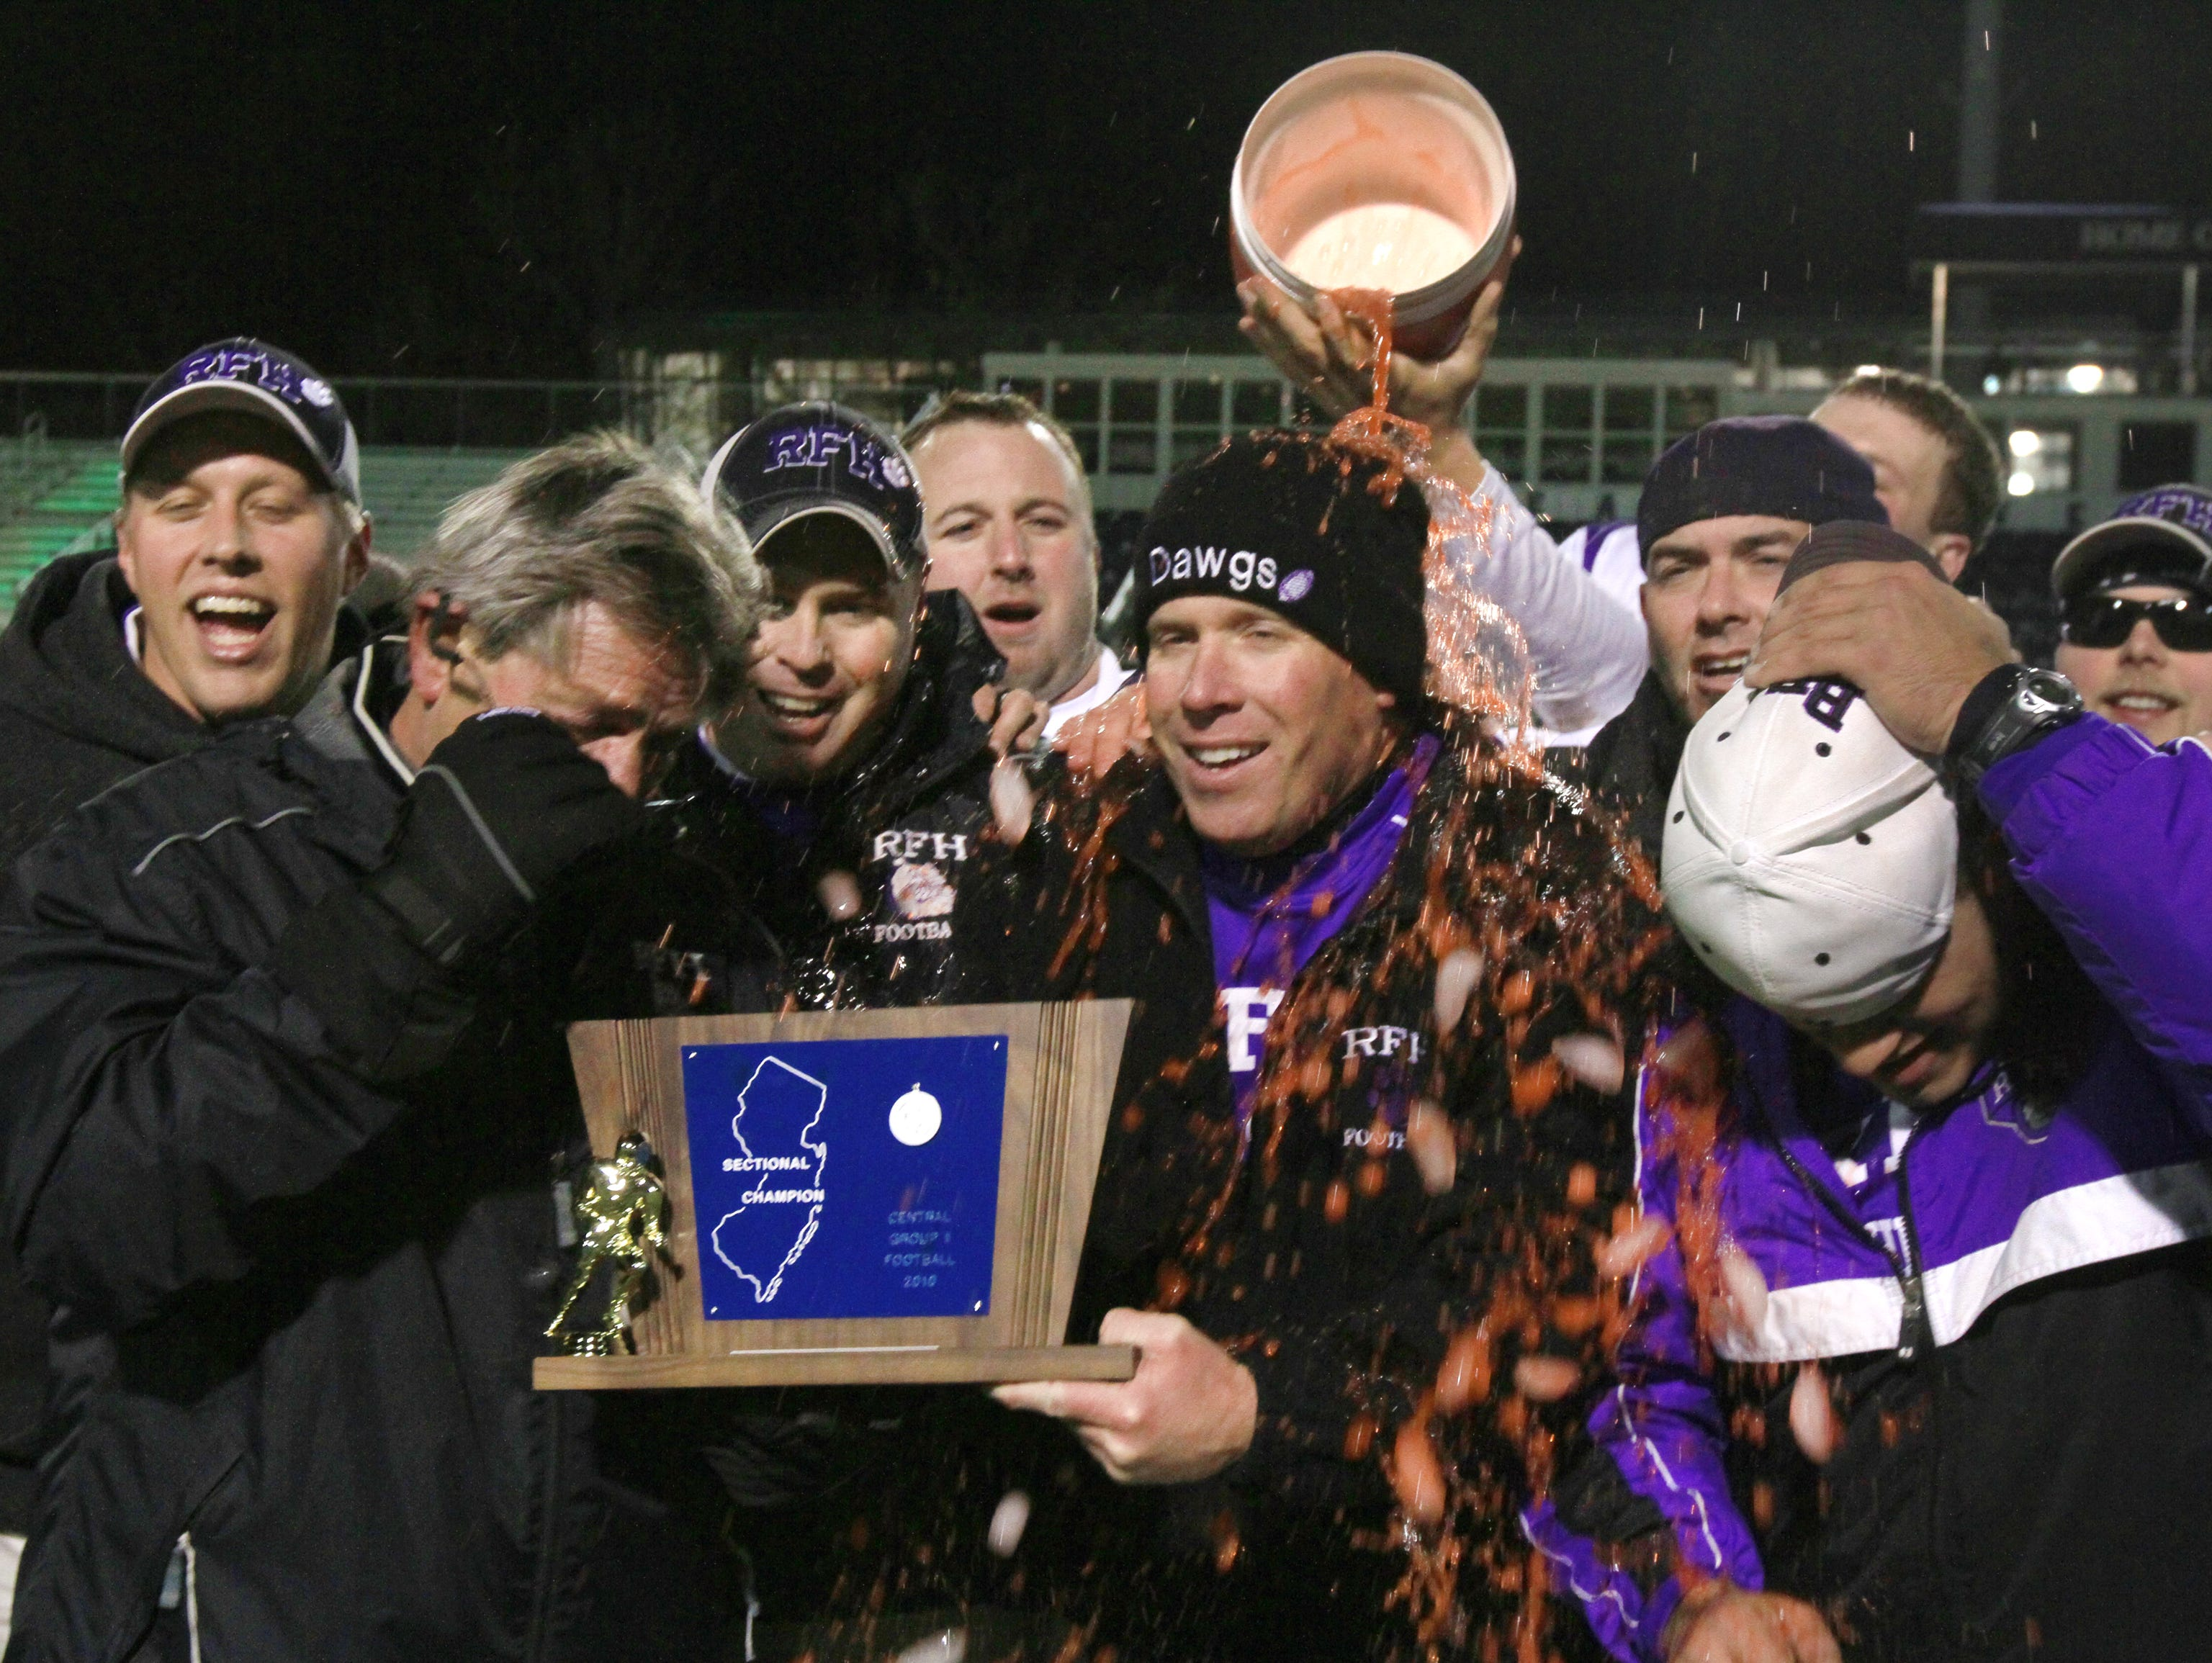 Rumson-Fair Haven coach Shane Fallon (center) gets a Gatorade bath as he receives the trophy after their upset win over Matawan in the 2010 CJ Group II championship game.